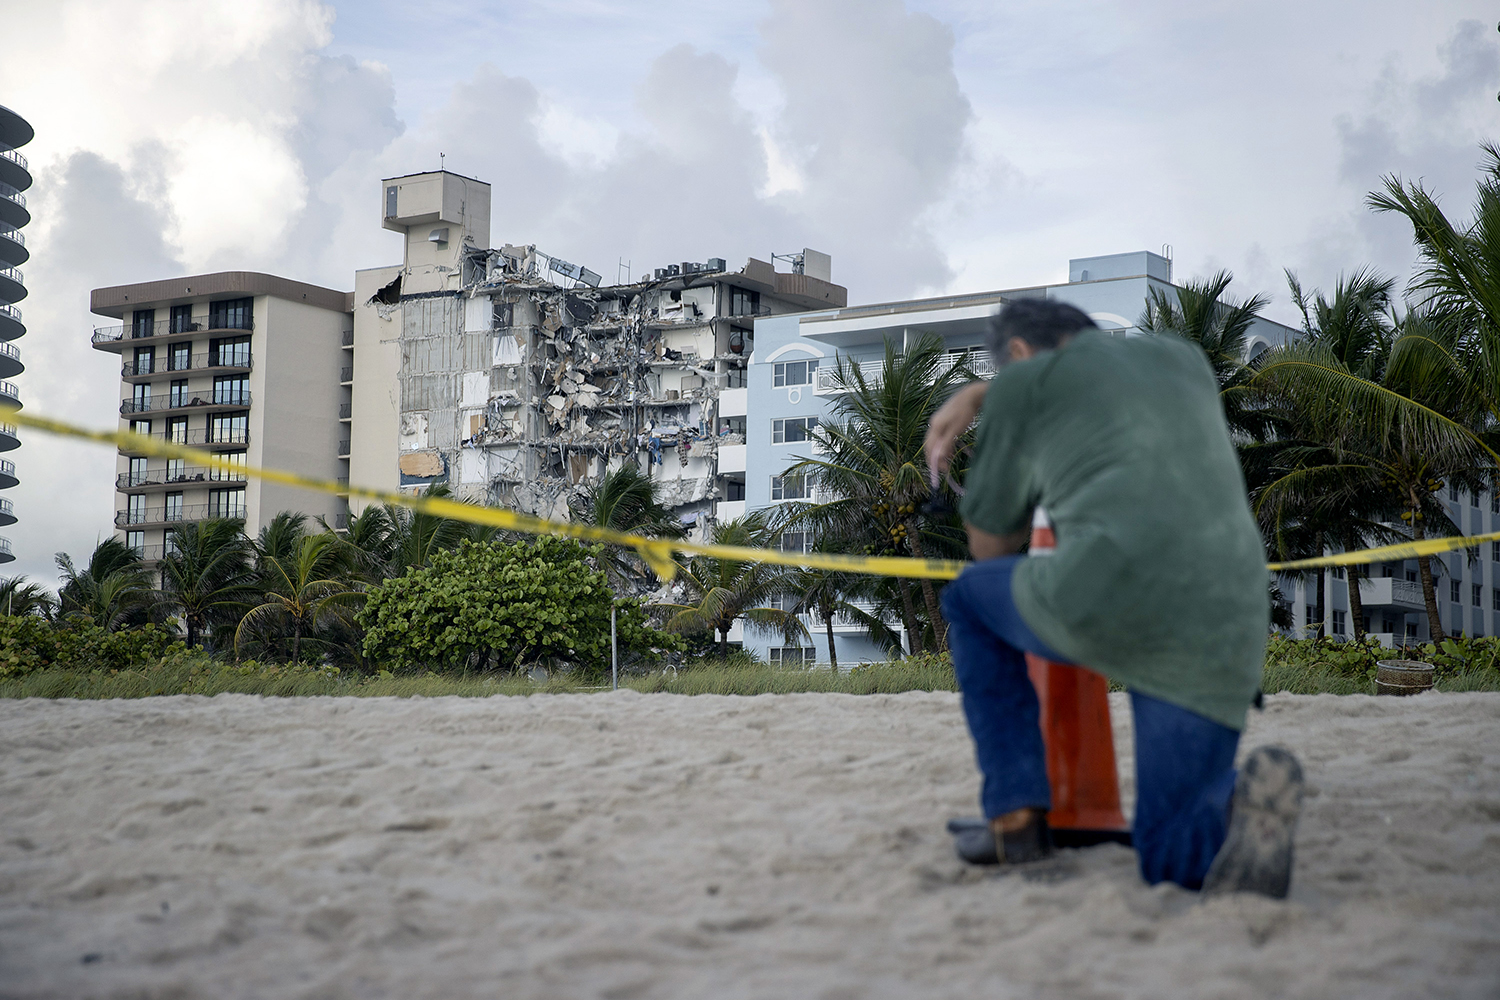 A man prays at site of collapsed condo in Florida